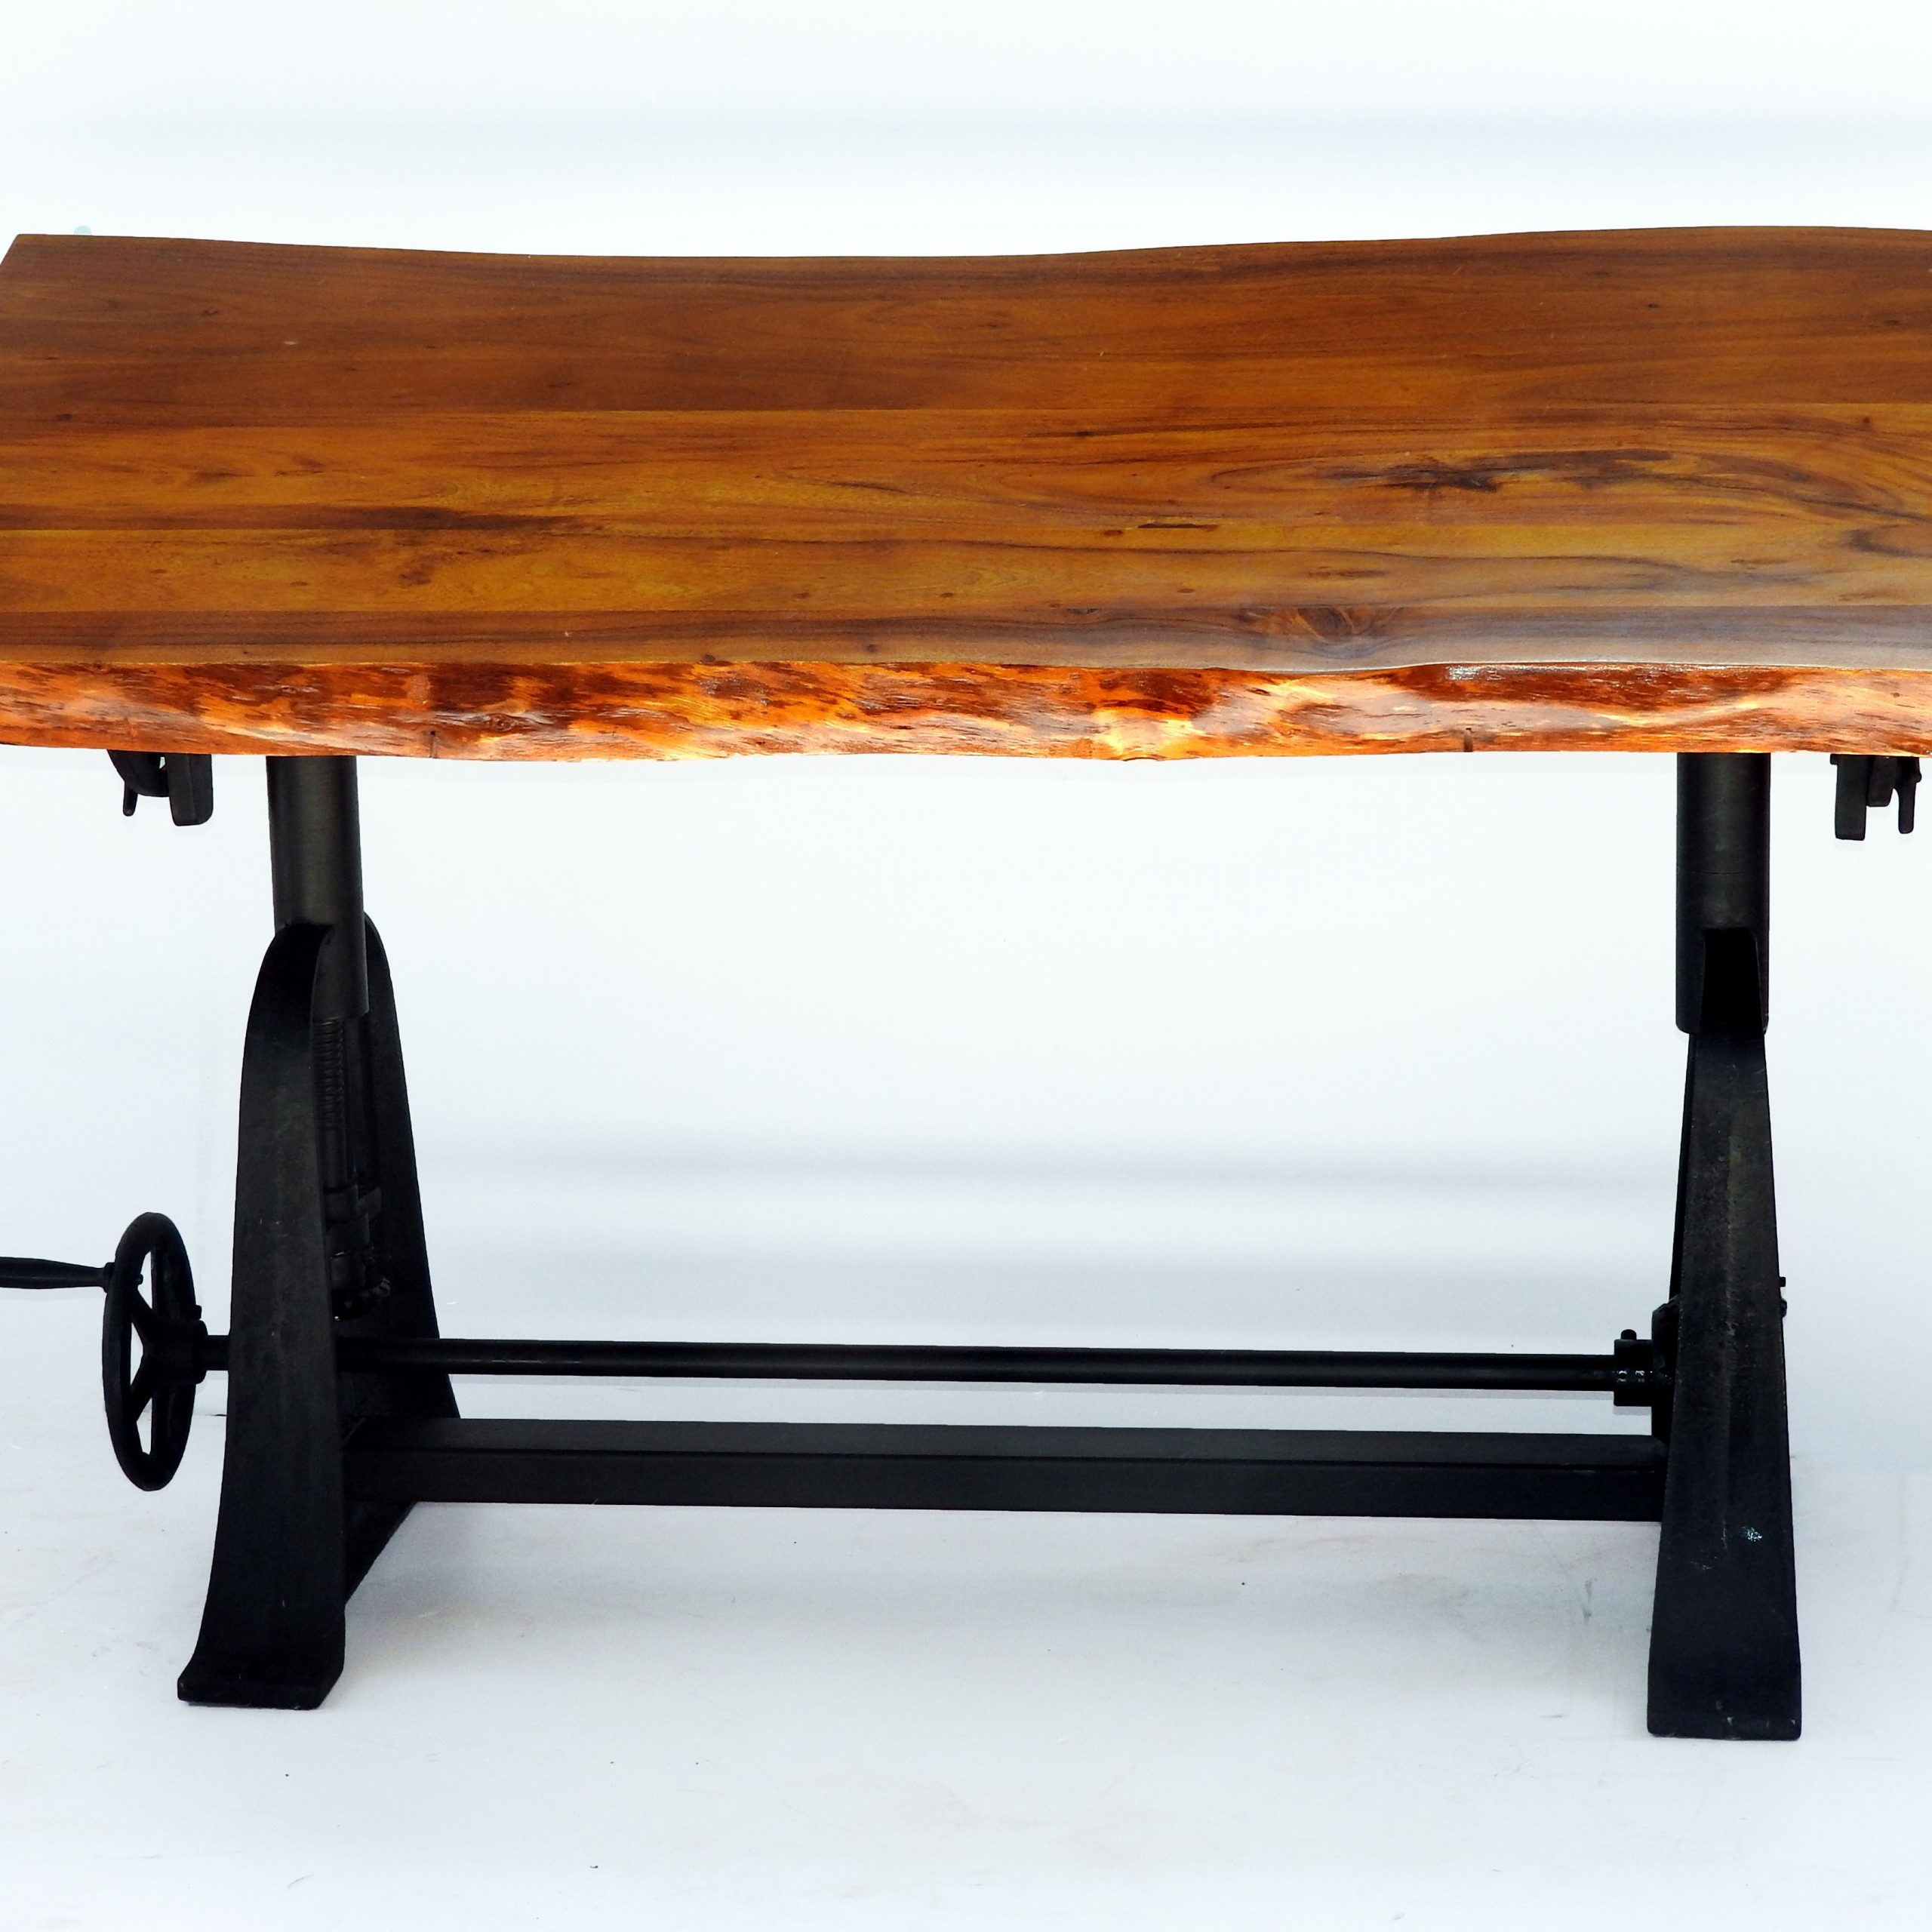 Live Edge Wood And Iron Table | Iron Table, Dining For Current Deonte 38'' Iron Dining Tables (View 8 of 15)